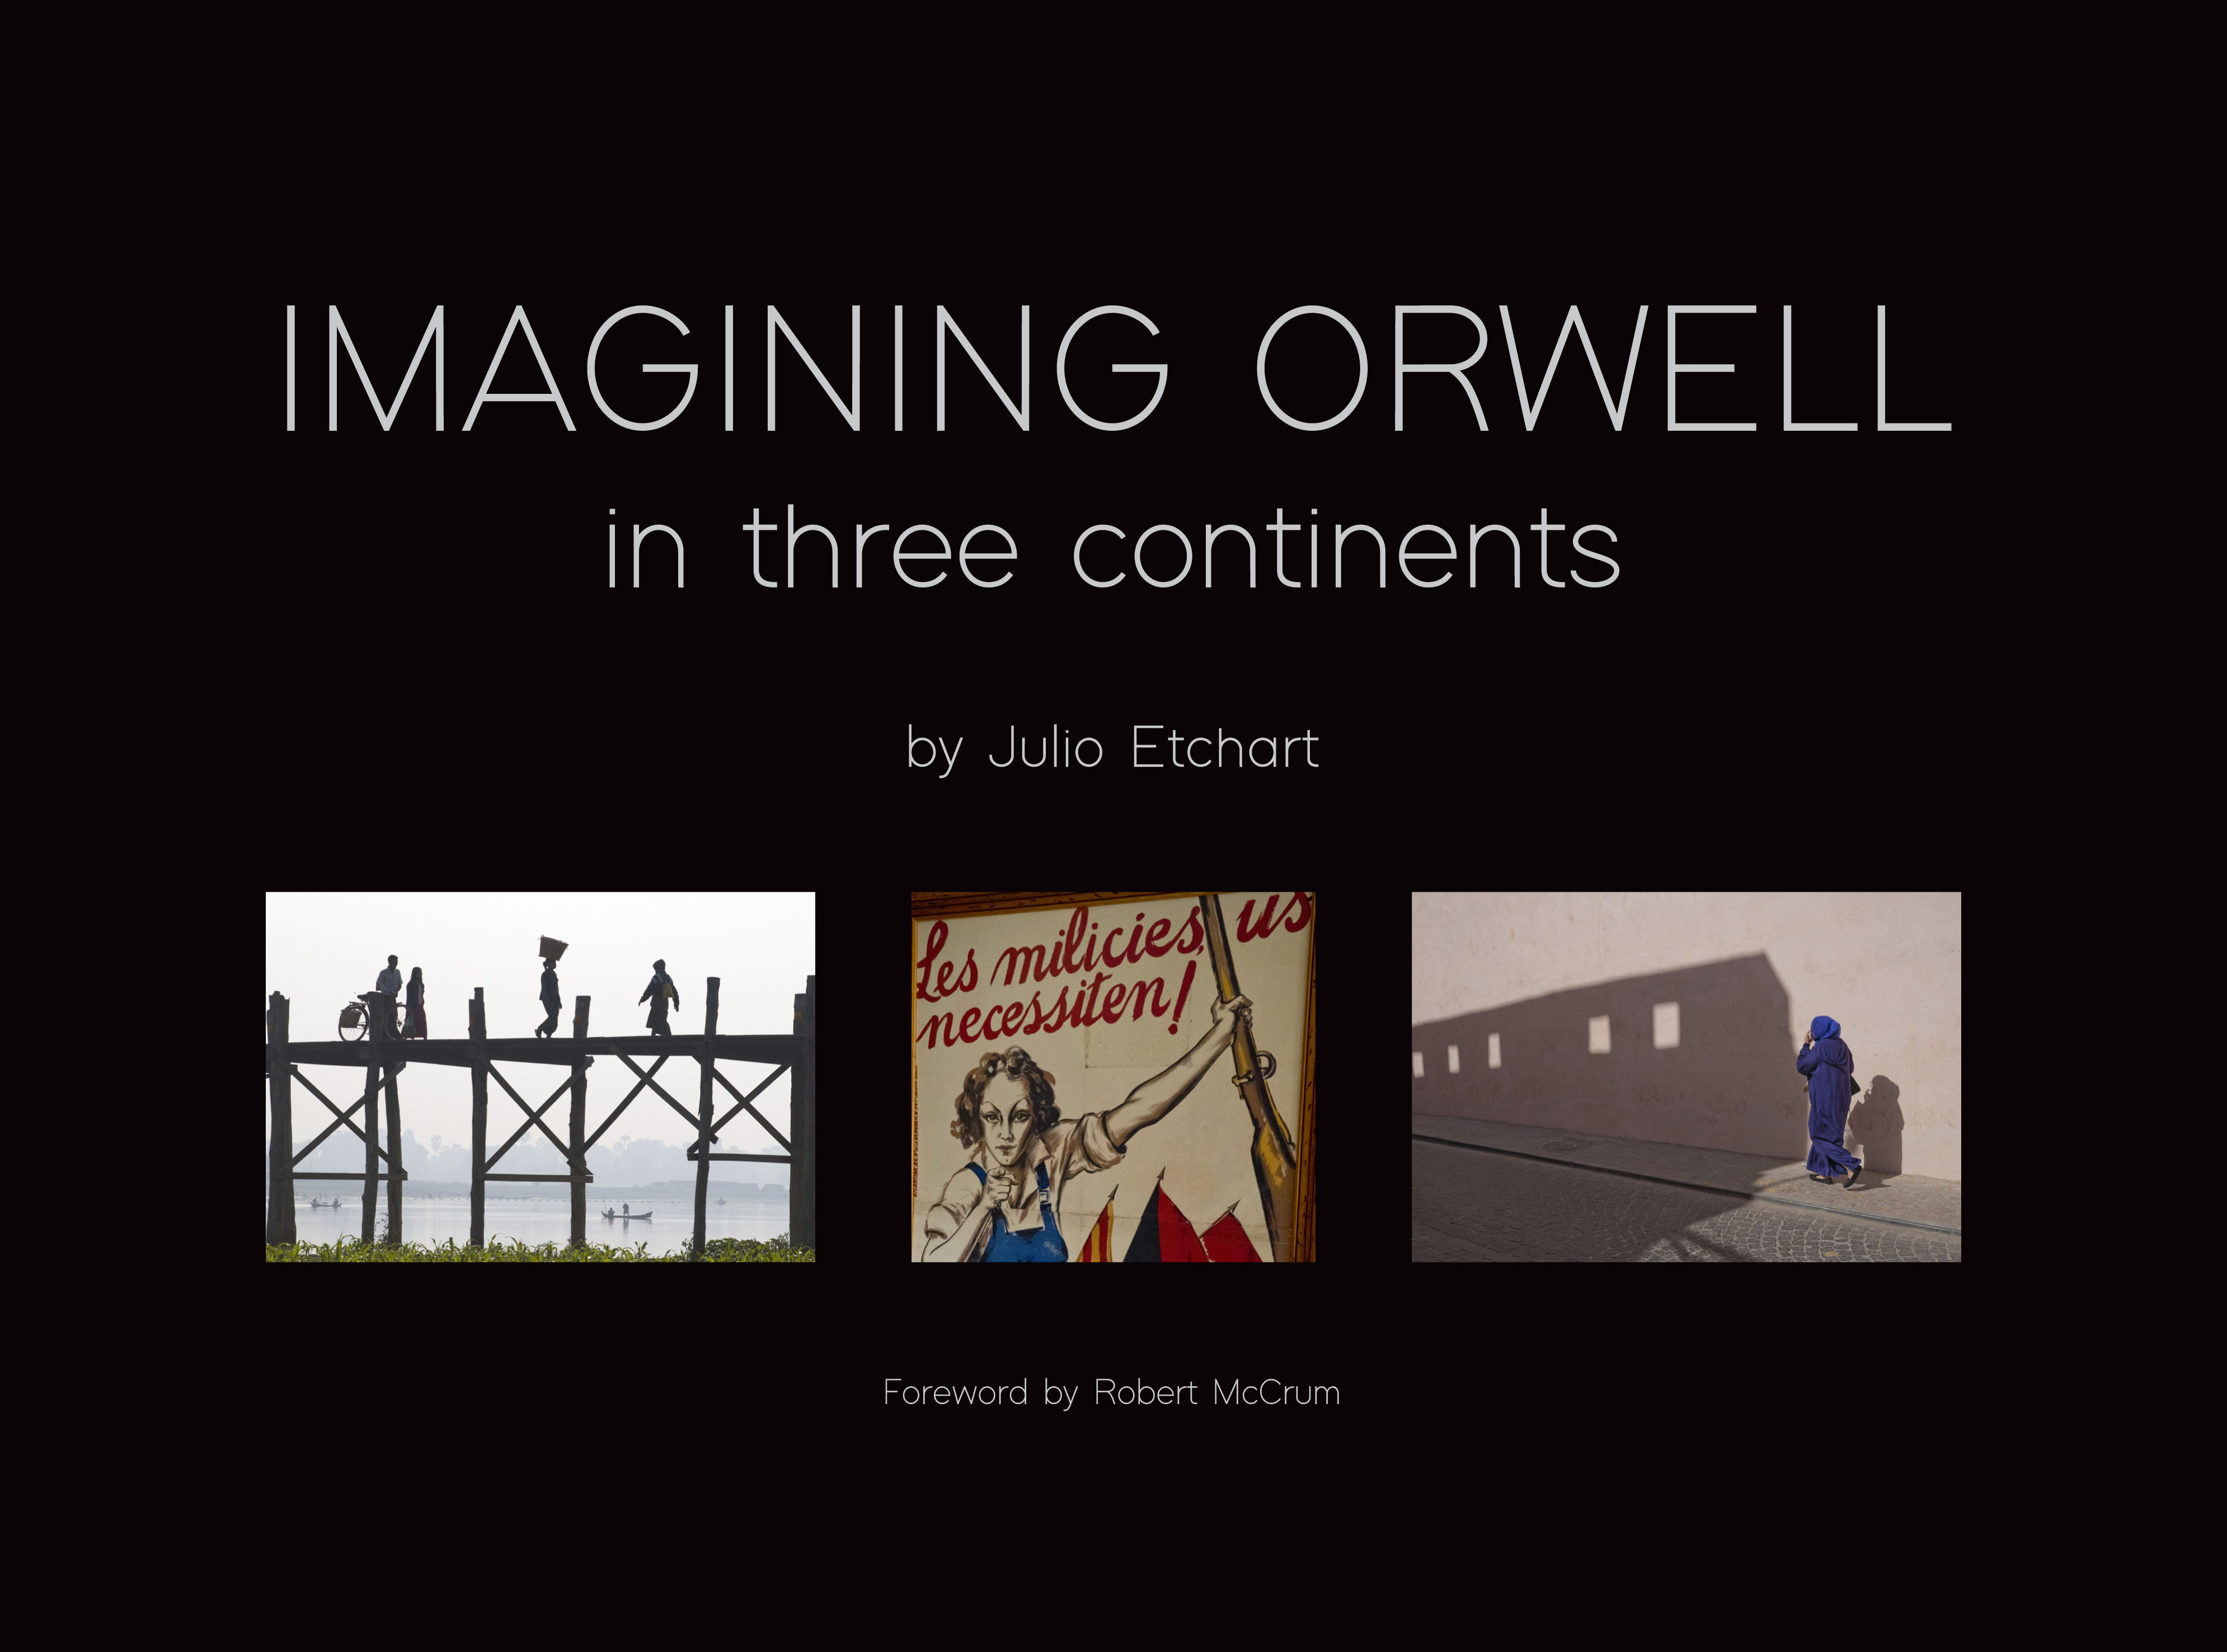 Imagining Orwell book cover